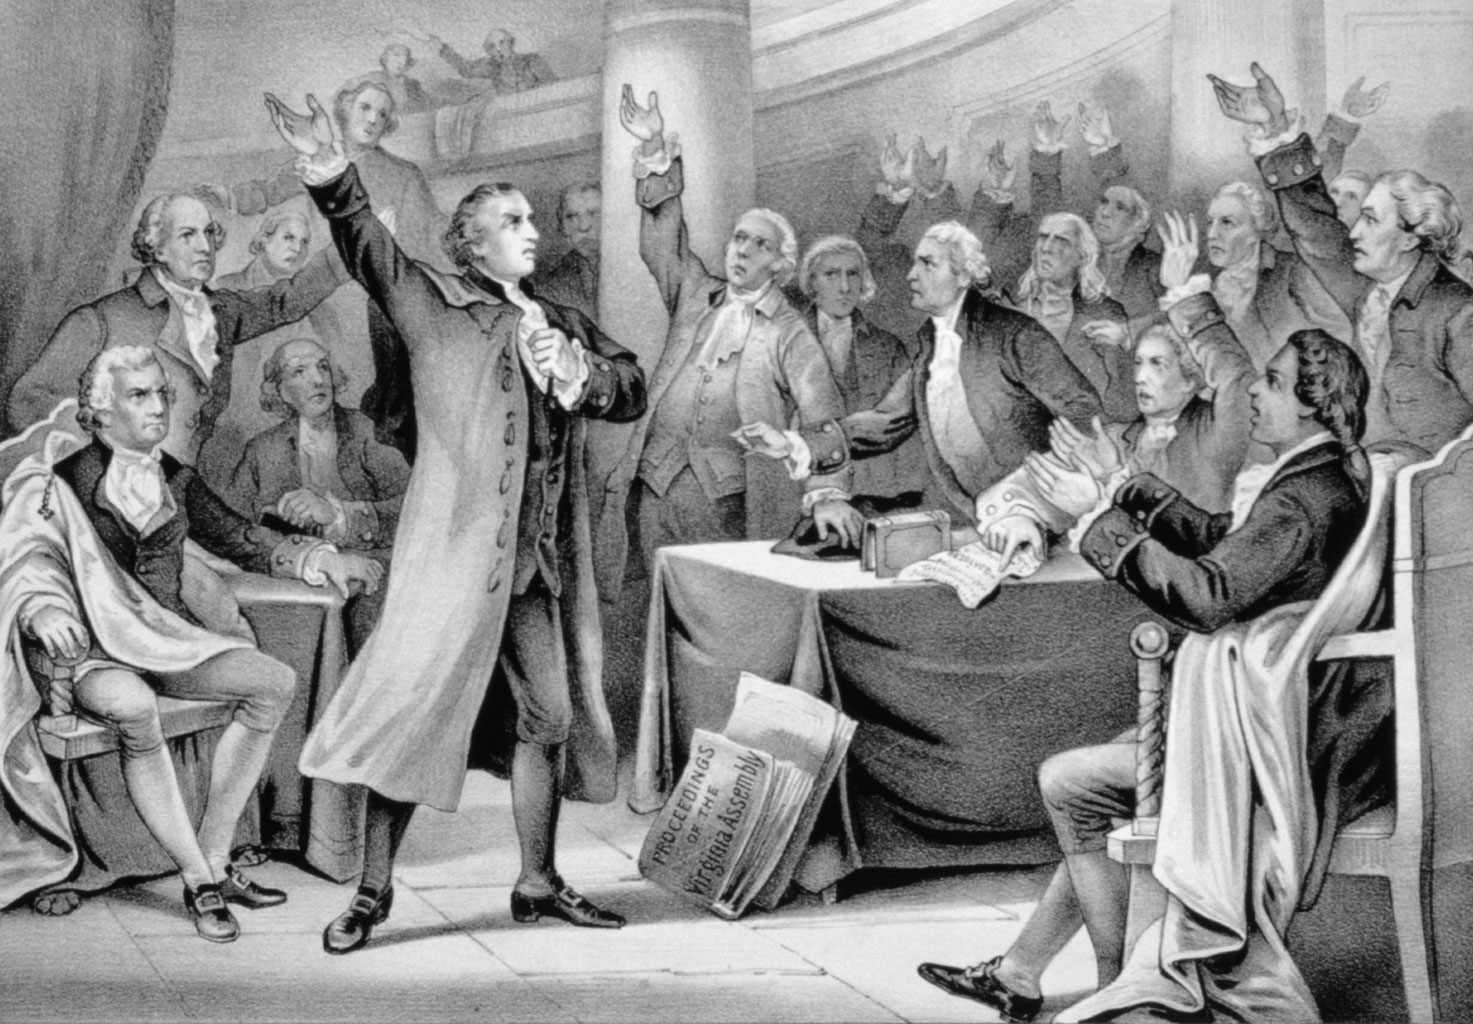 drawing of man in American colonial dress delivering speech to other men